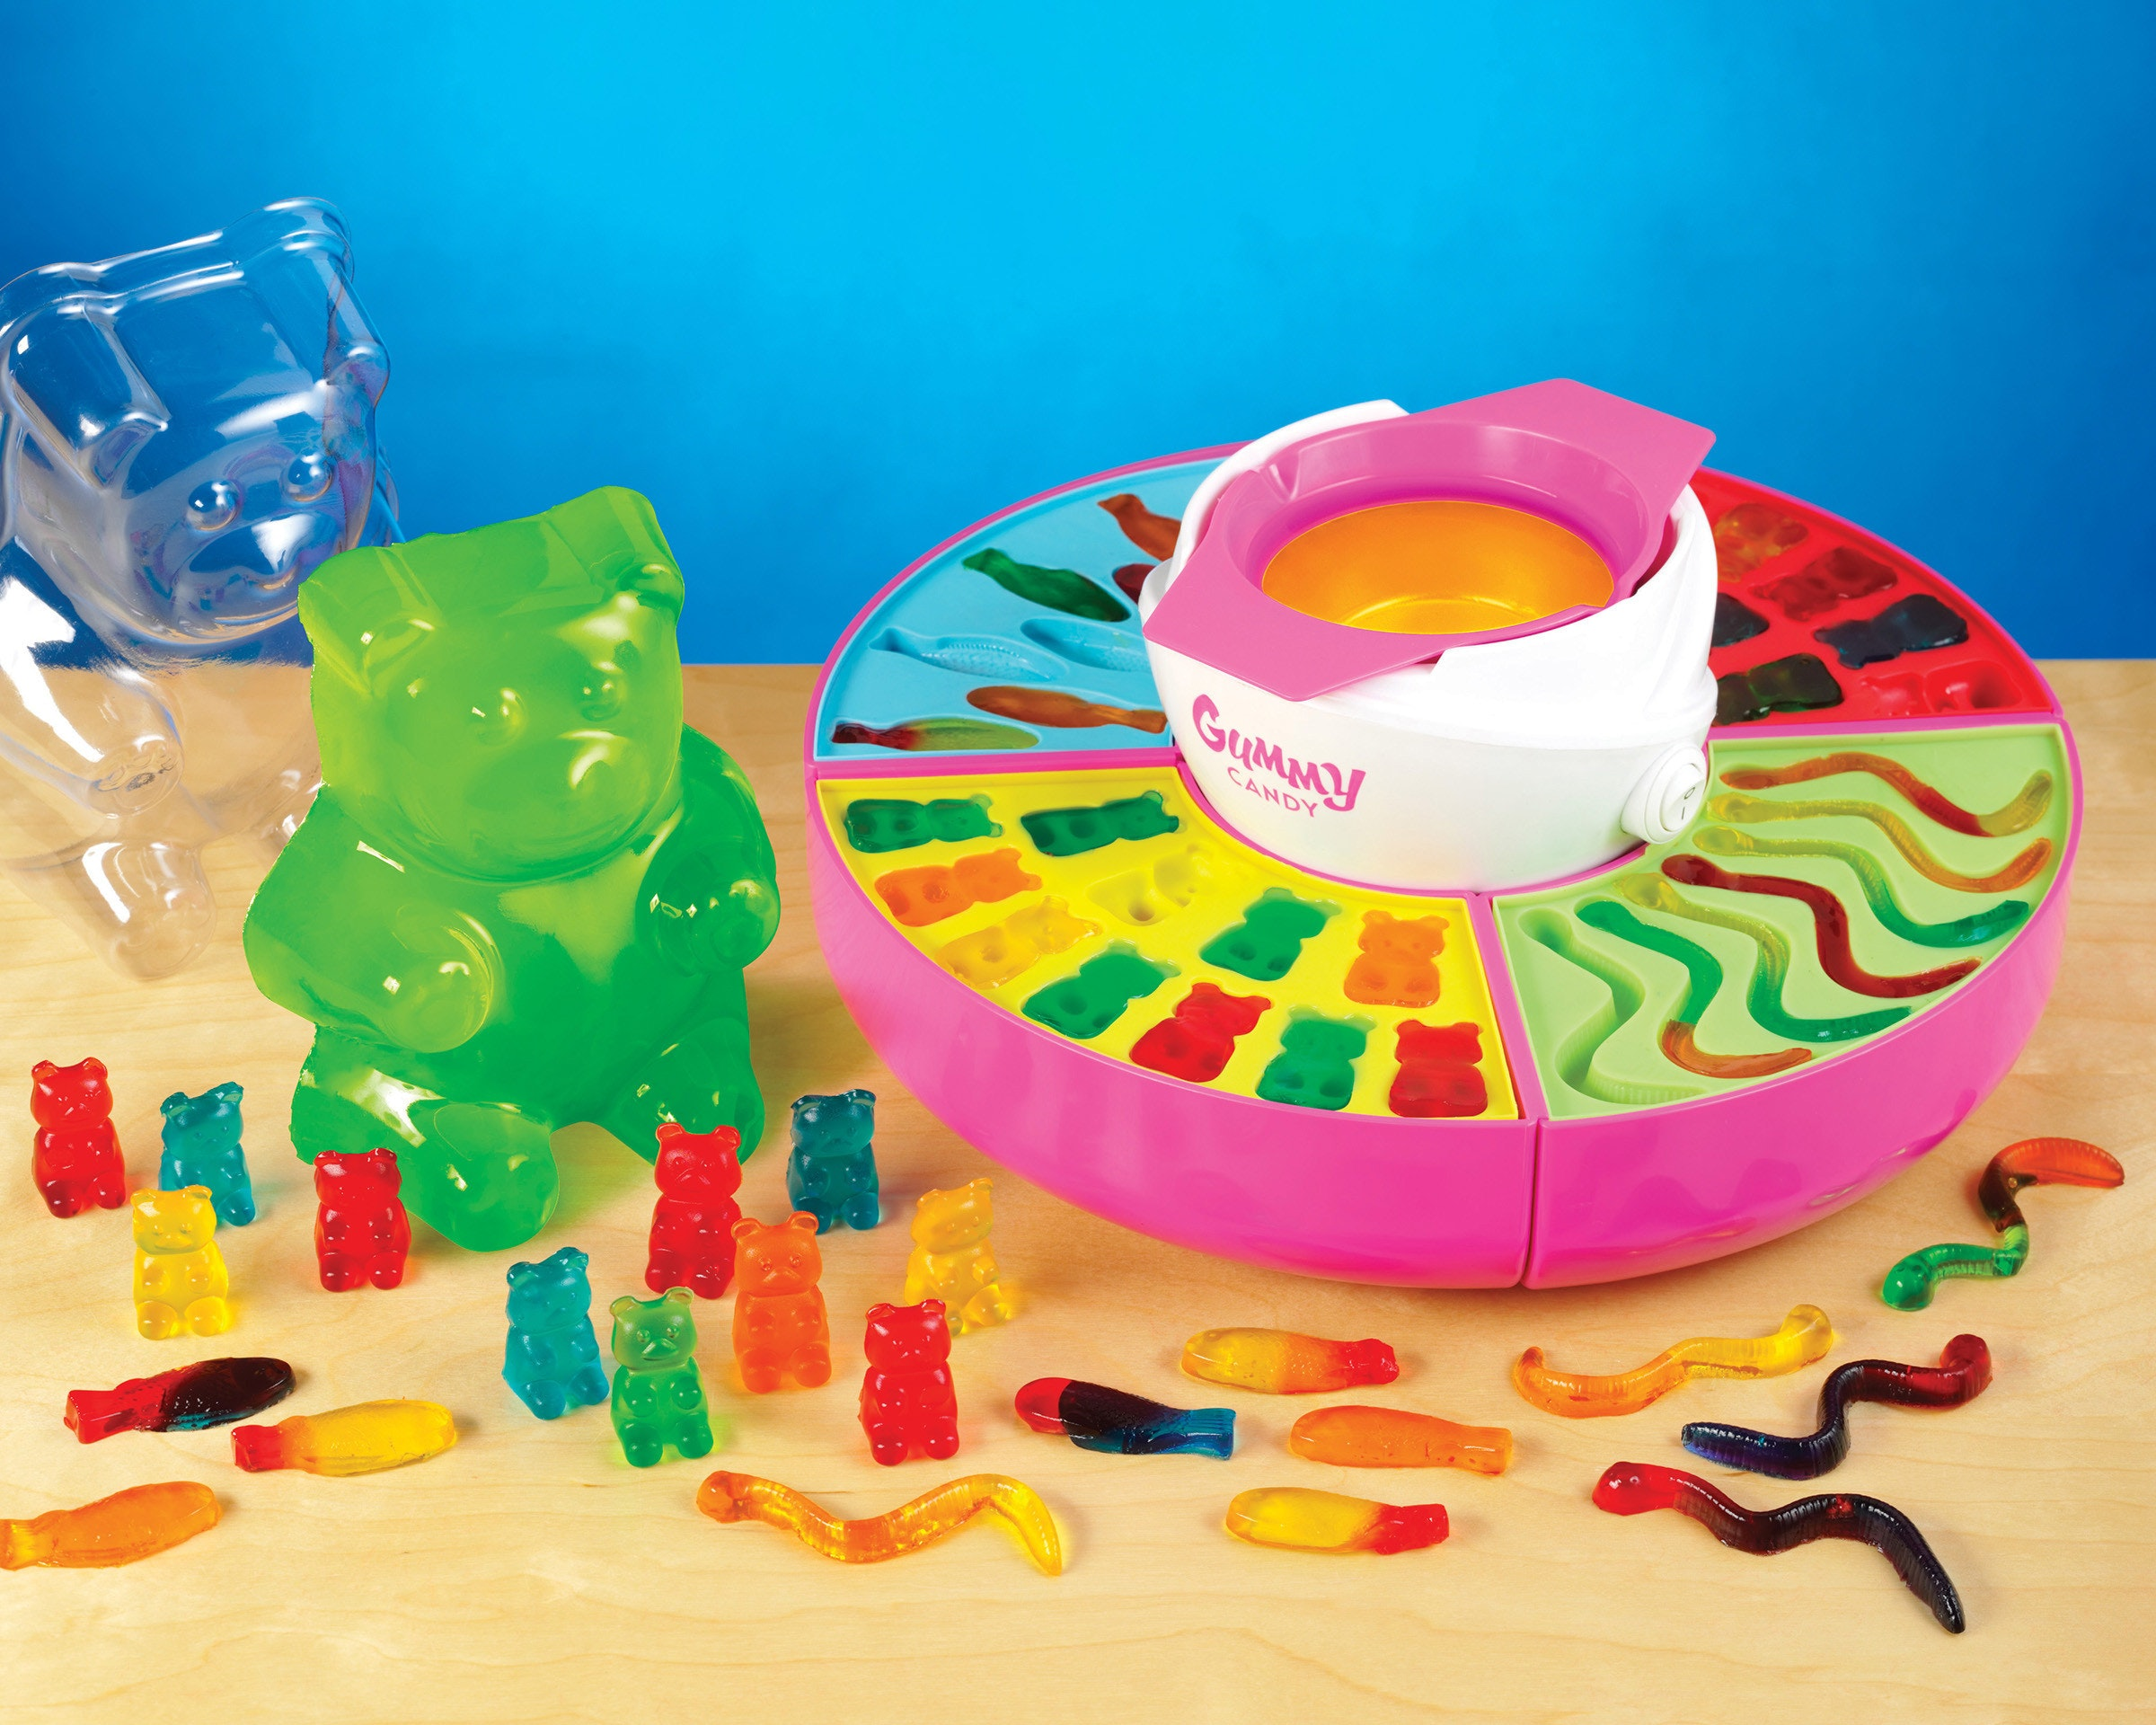 GW Baking: Gummy Candy Maker! sweepstakes